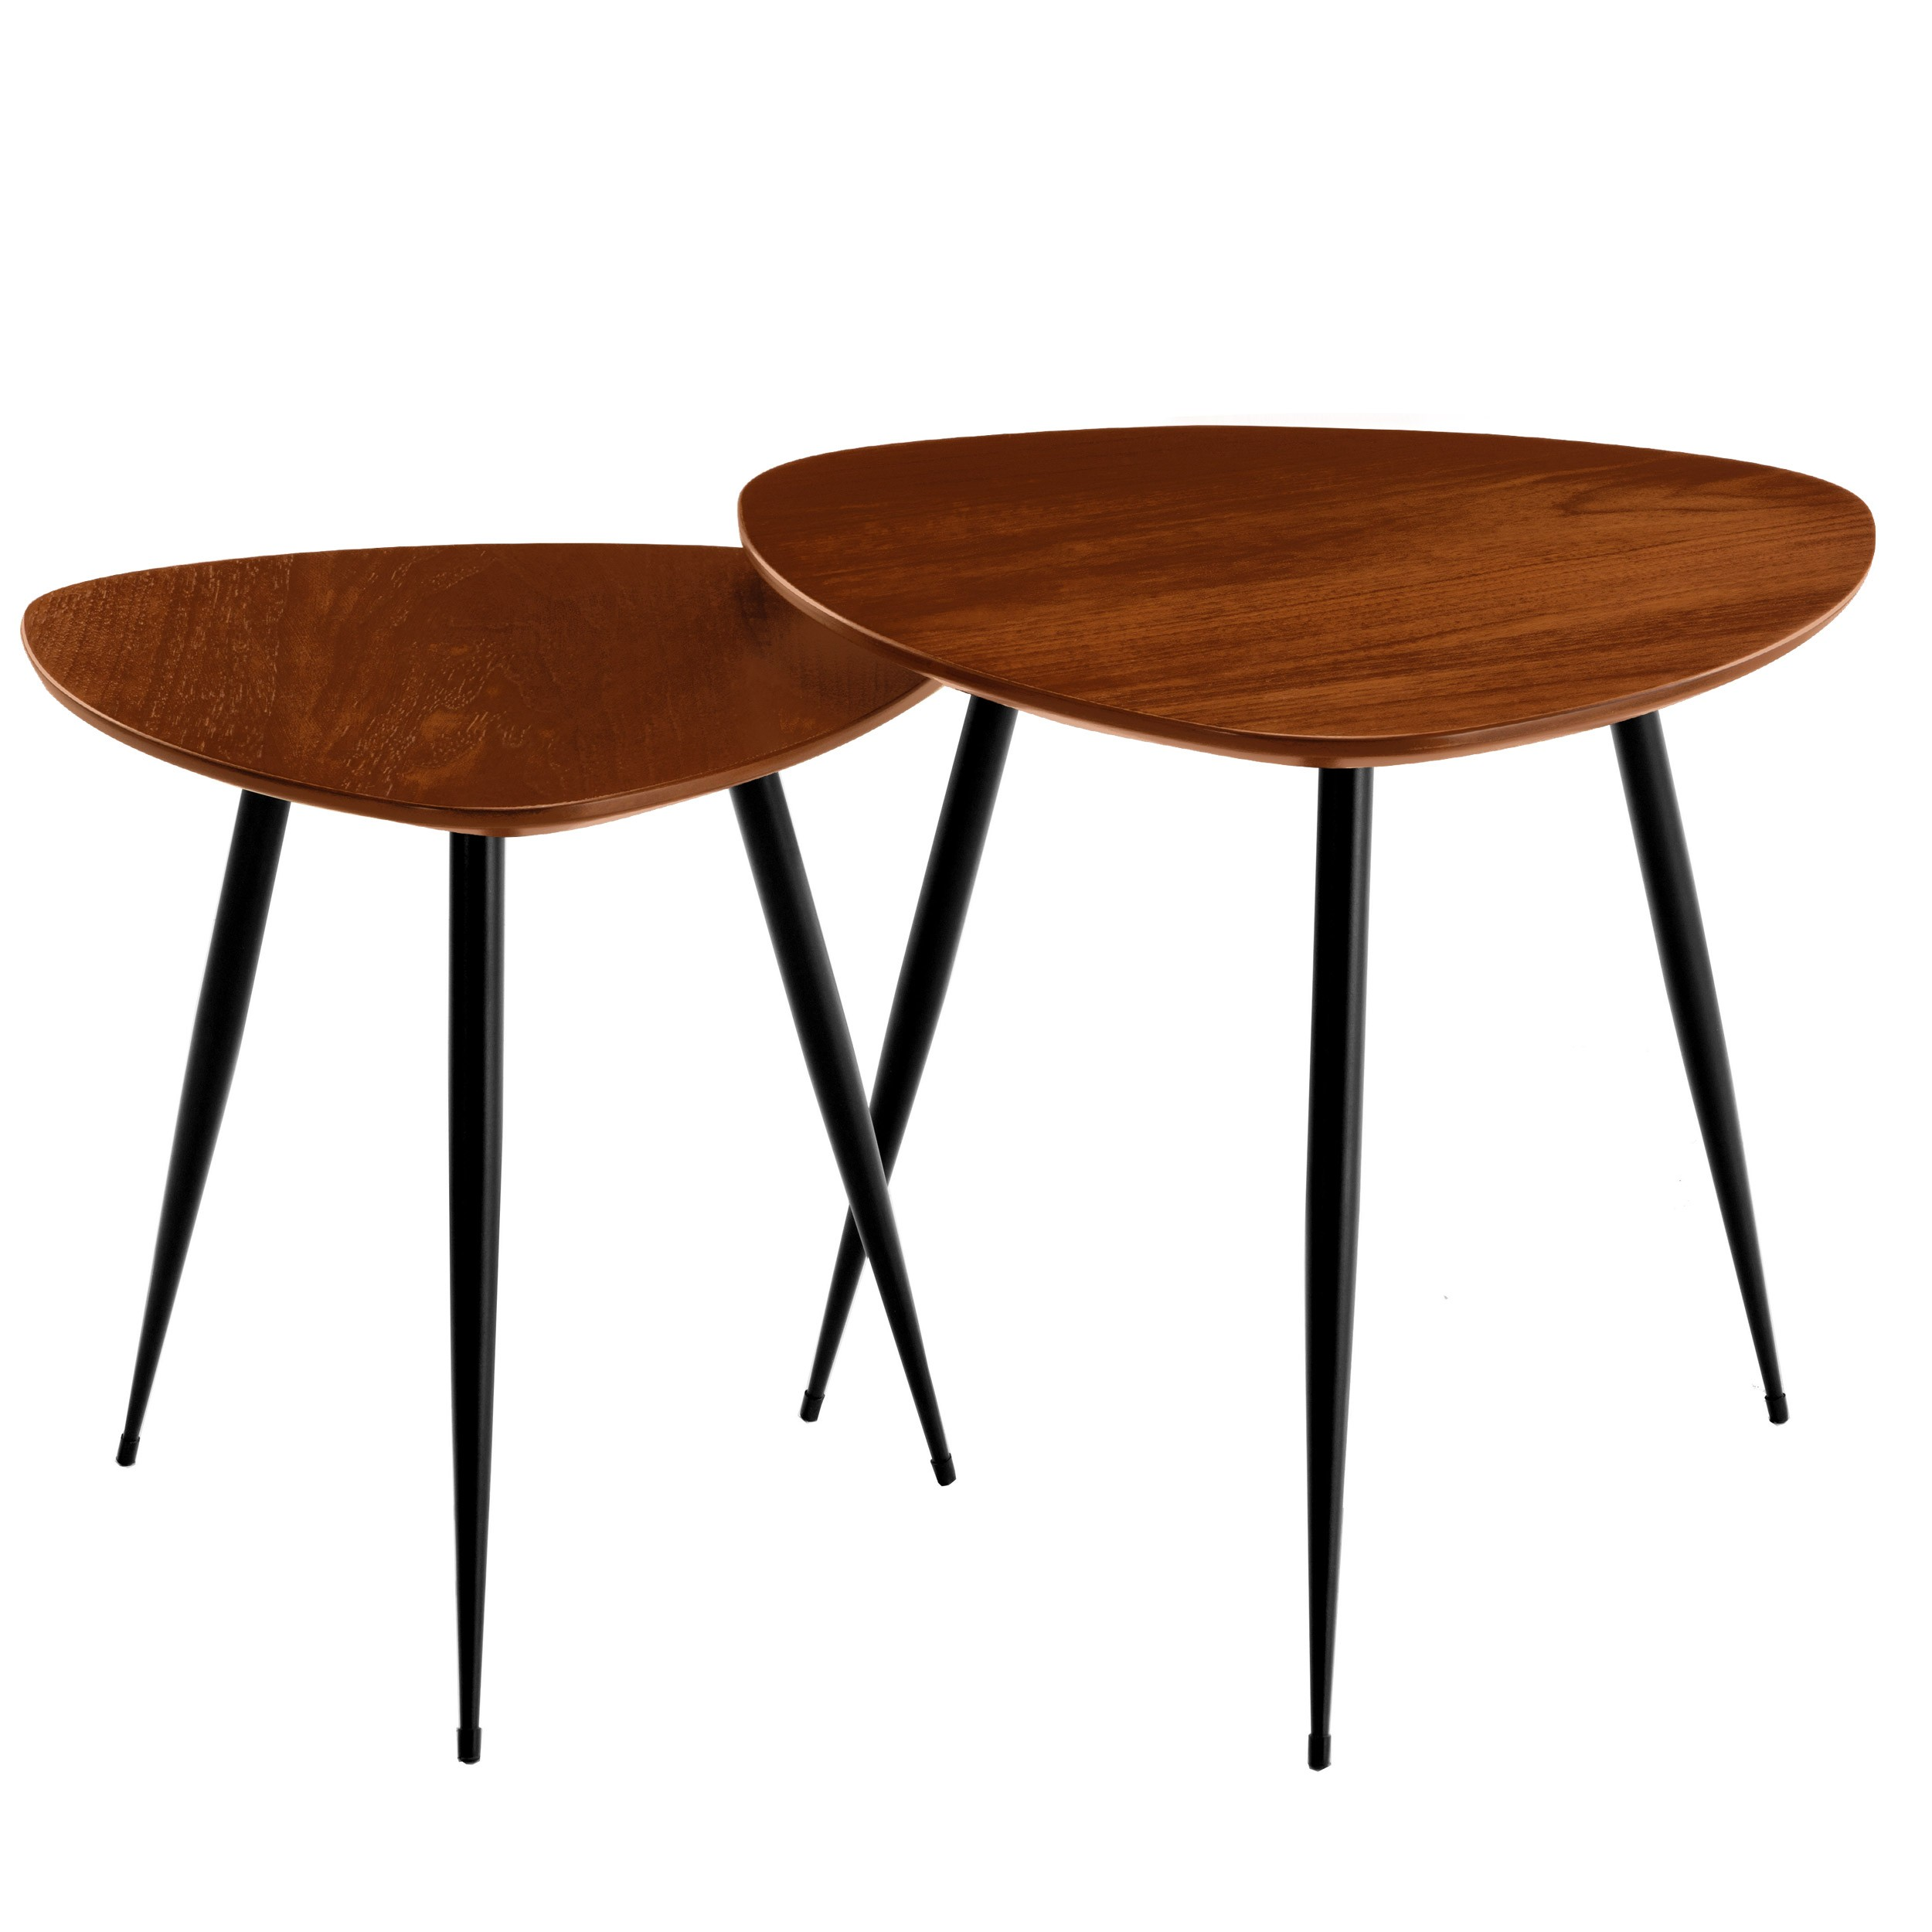 Tables Basses Scandinaves En Bois Fonce Quercus Lot De 2